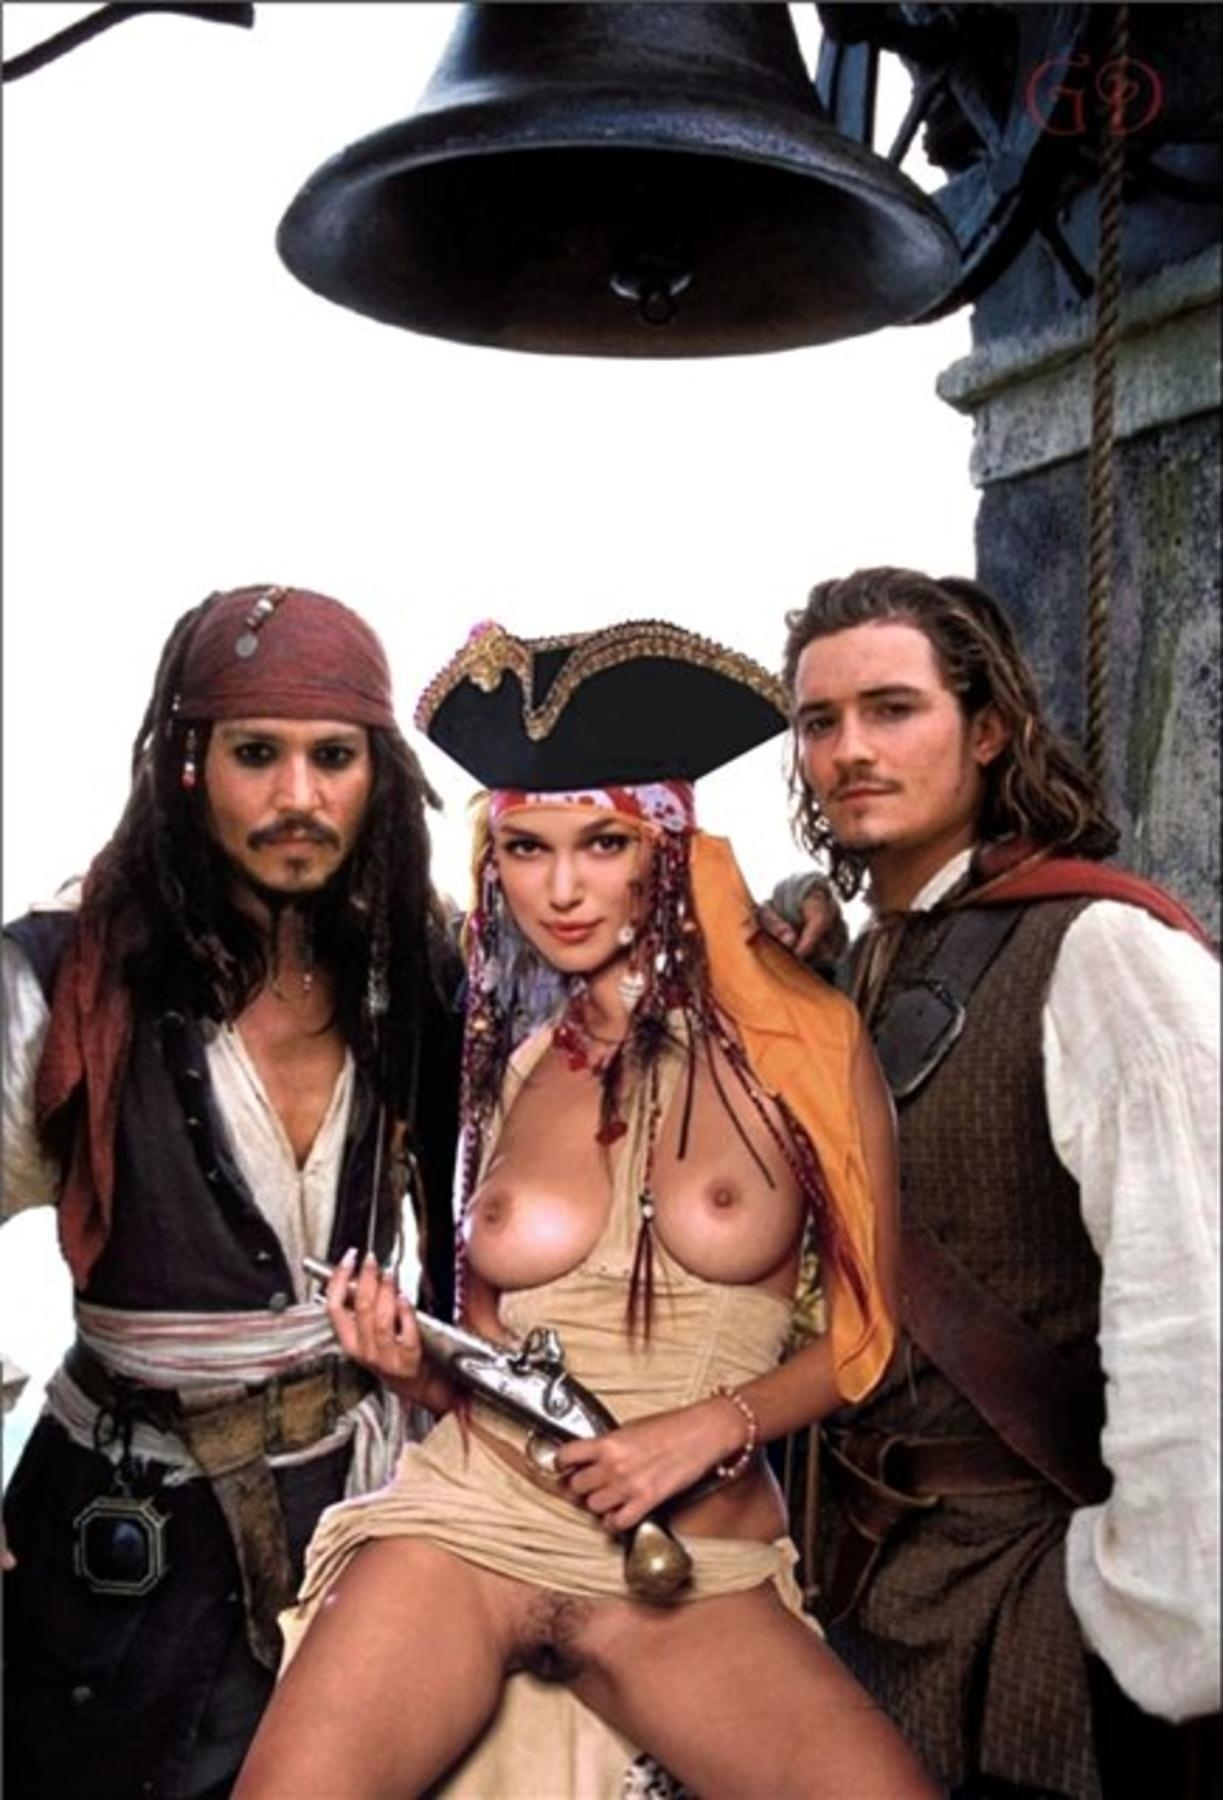 Pirates of the caribbean lesbian porn parody sexy photo